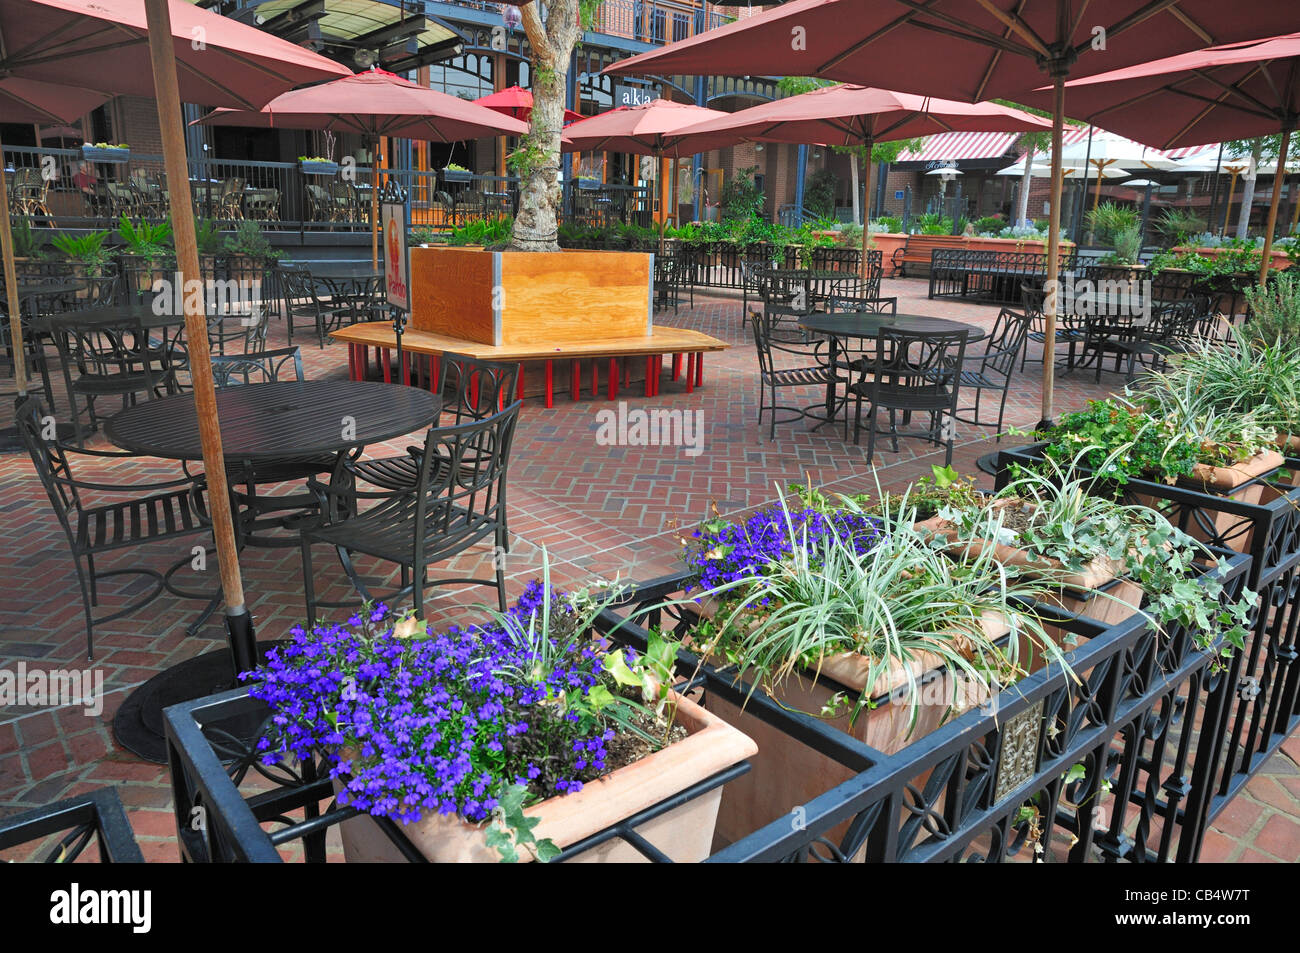 One Colorado open air patio in Old Pasadena - Stock Image